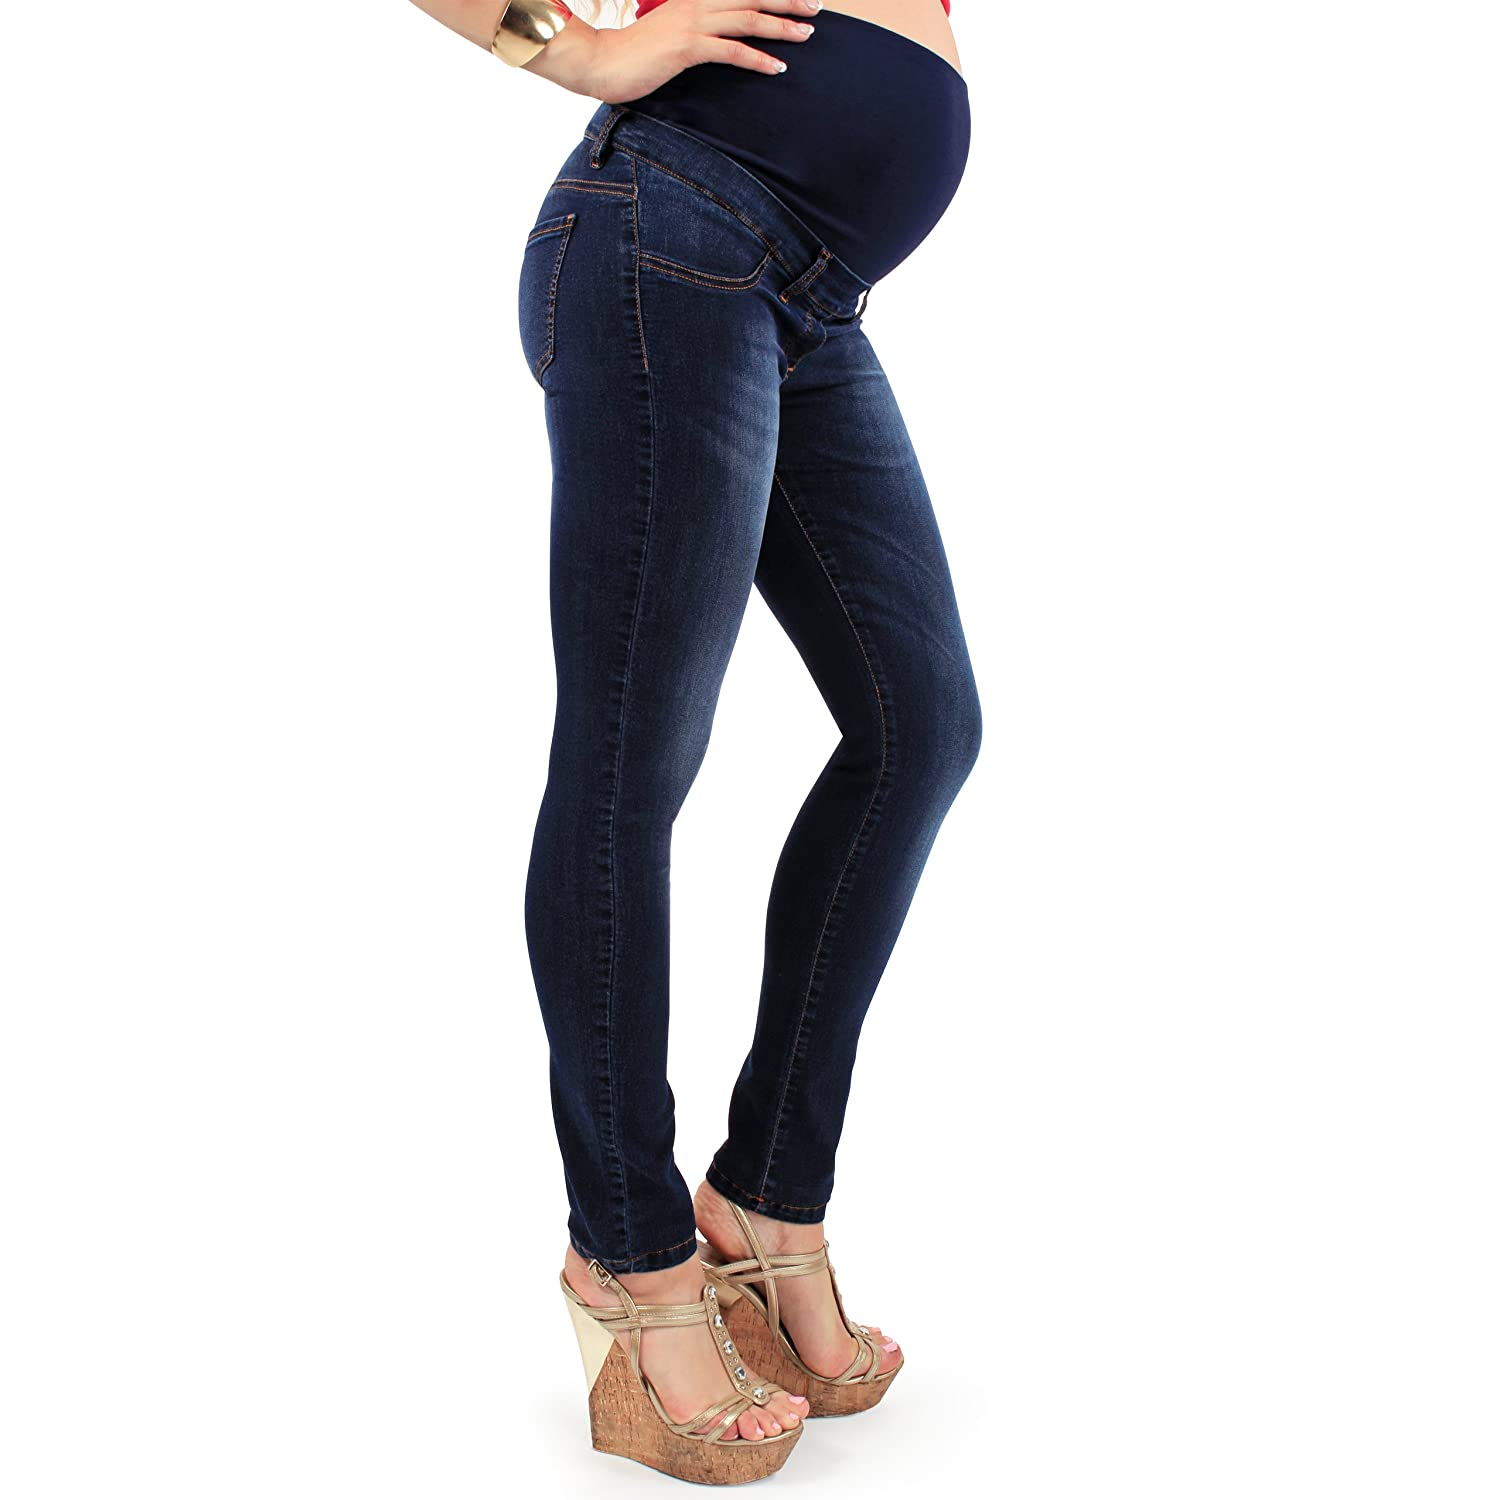 MamaJeans Milano Denim Maternity Jeans Made in Italy